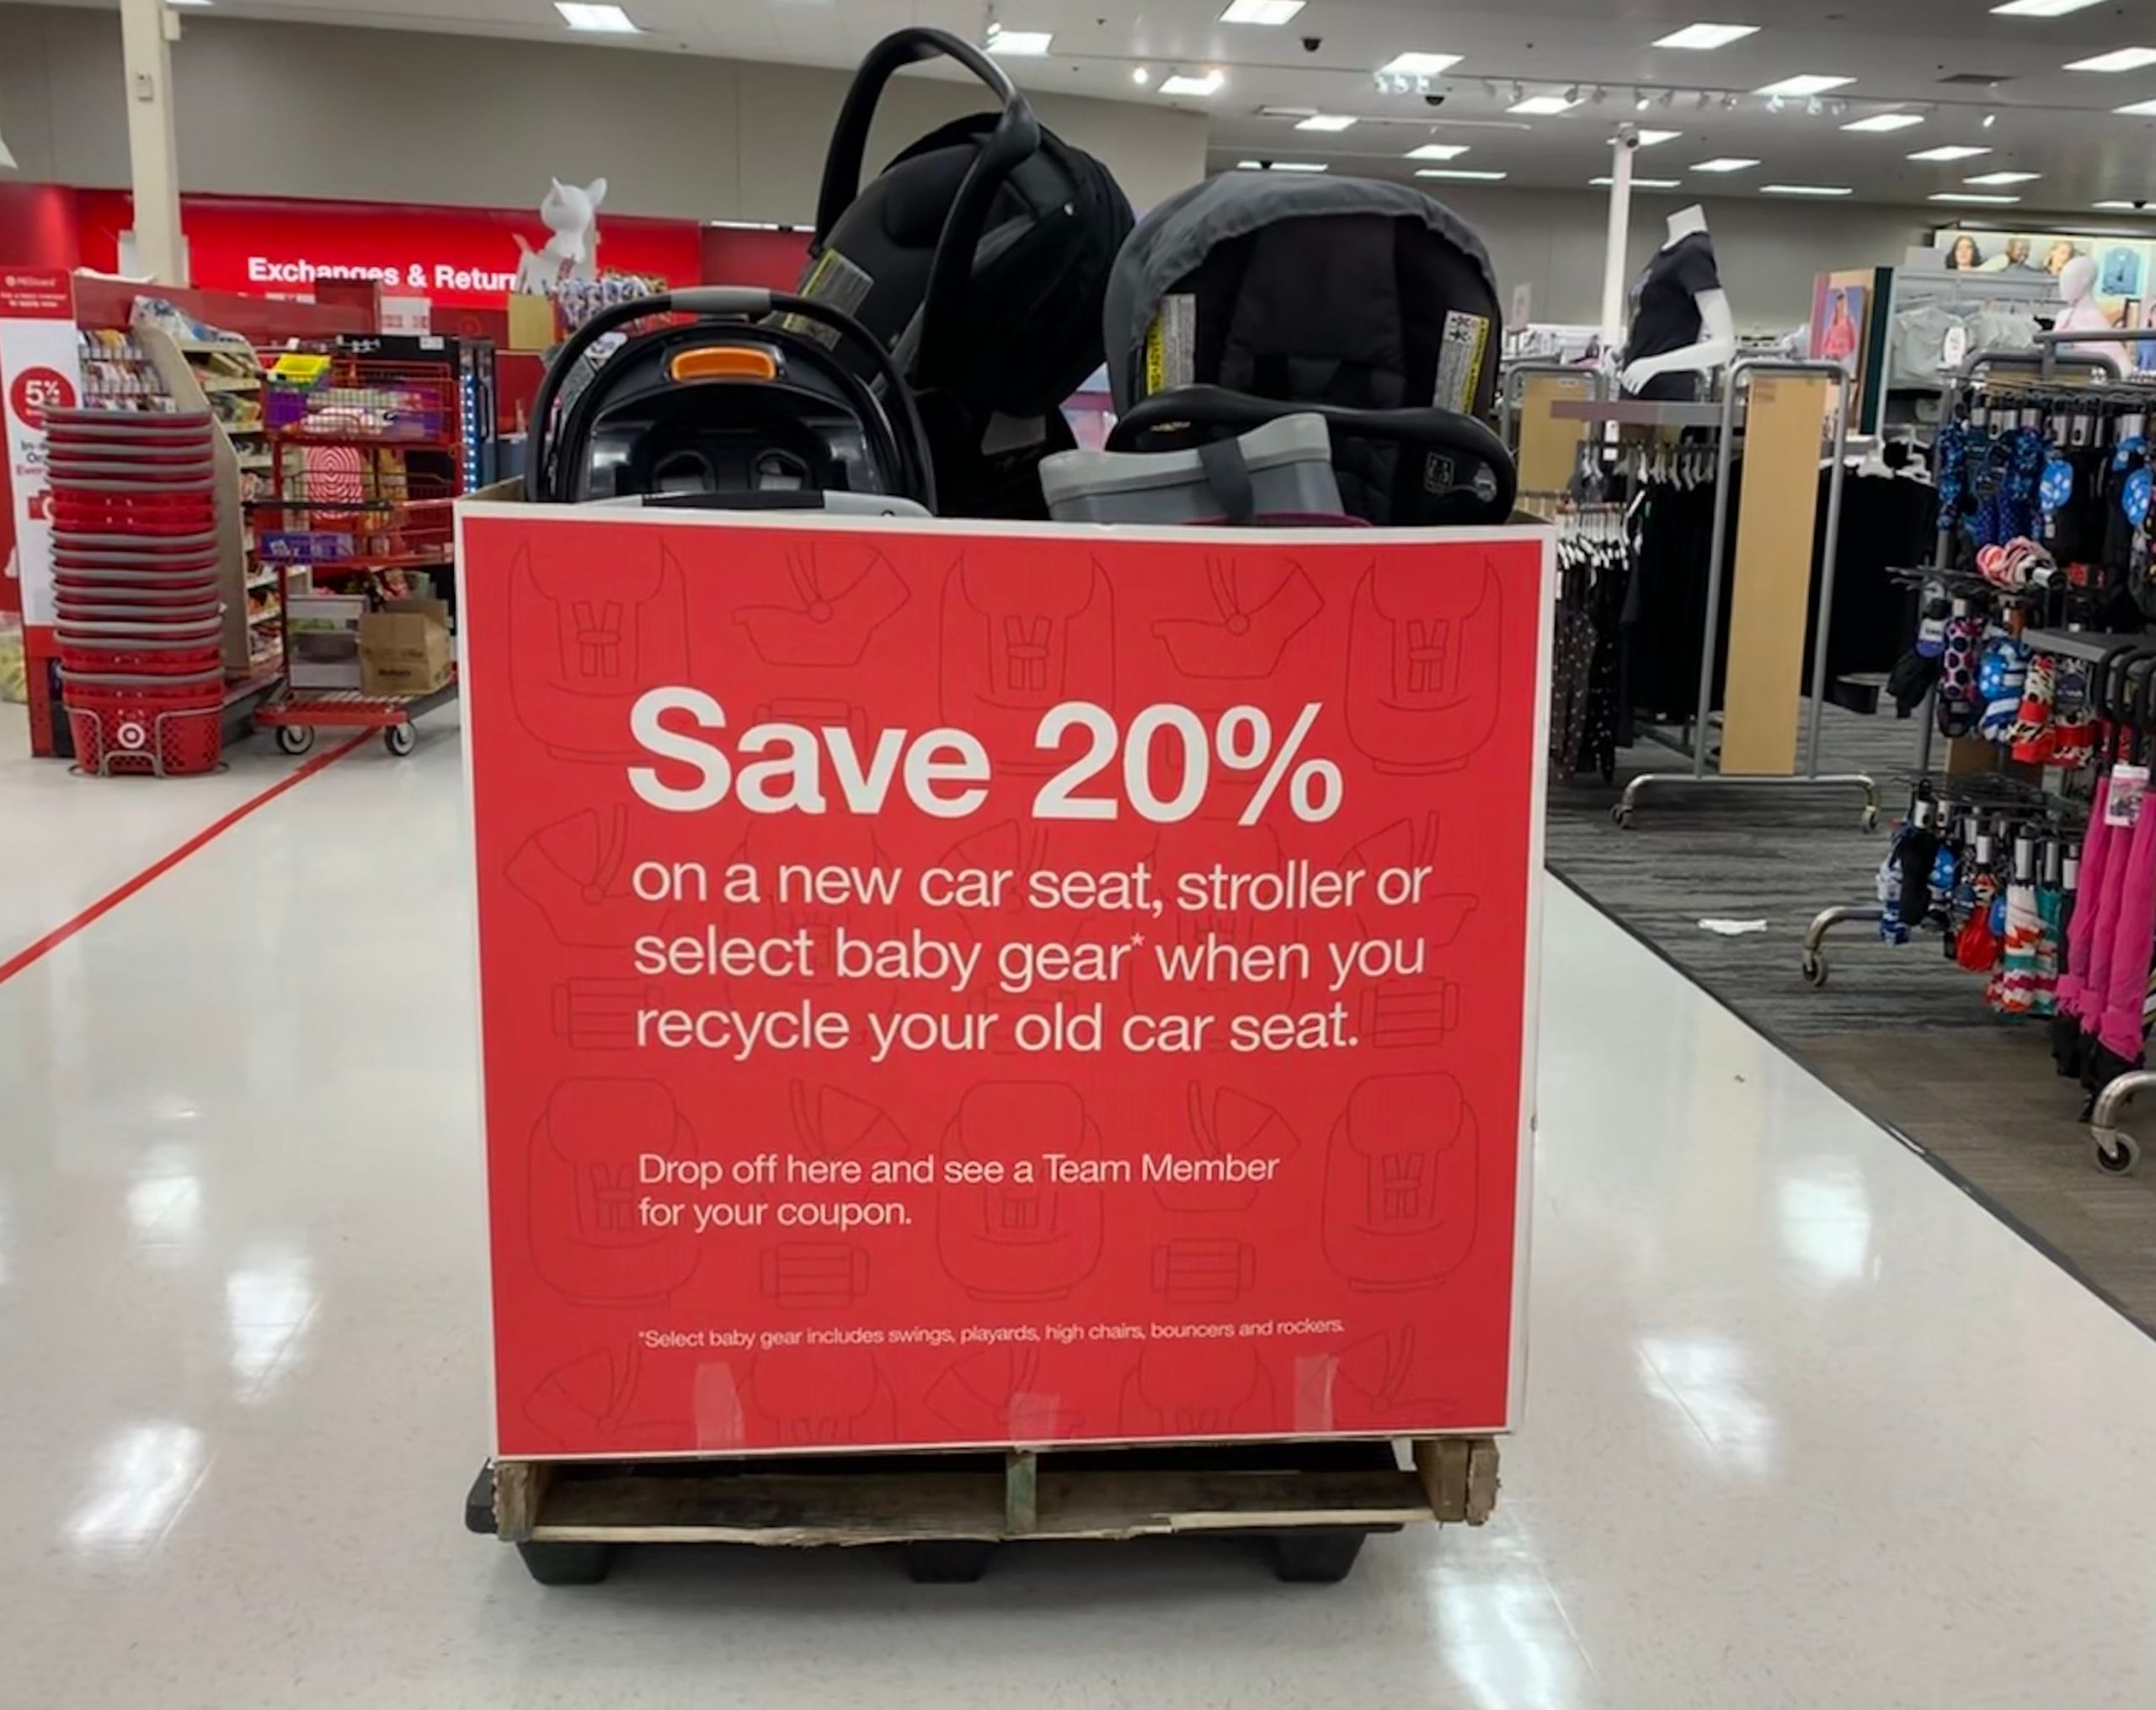 Target car seat trade-in event returns Monday: Here's how to get a 20% discount for recycling old car seats